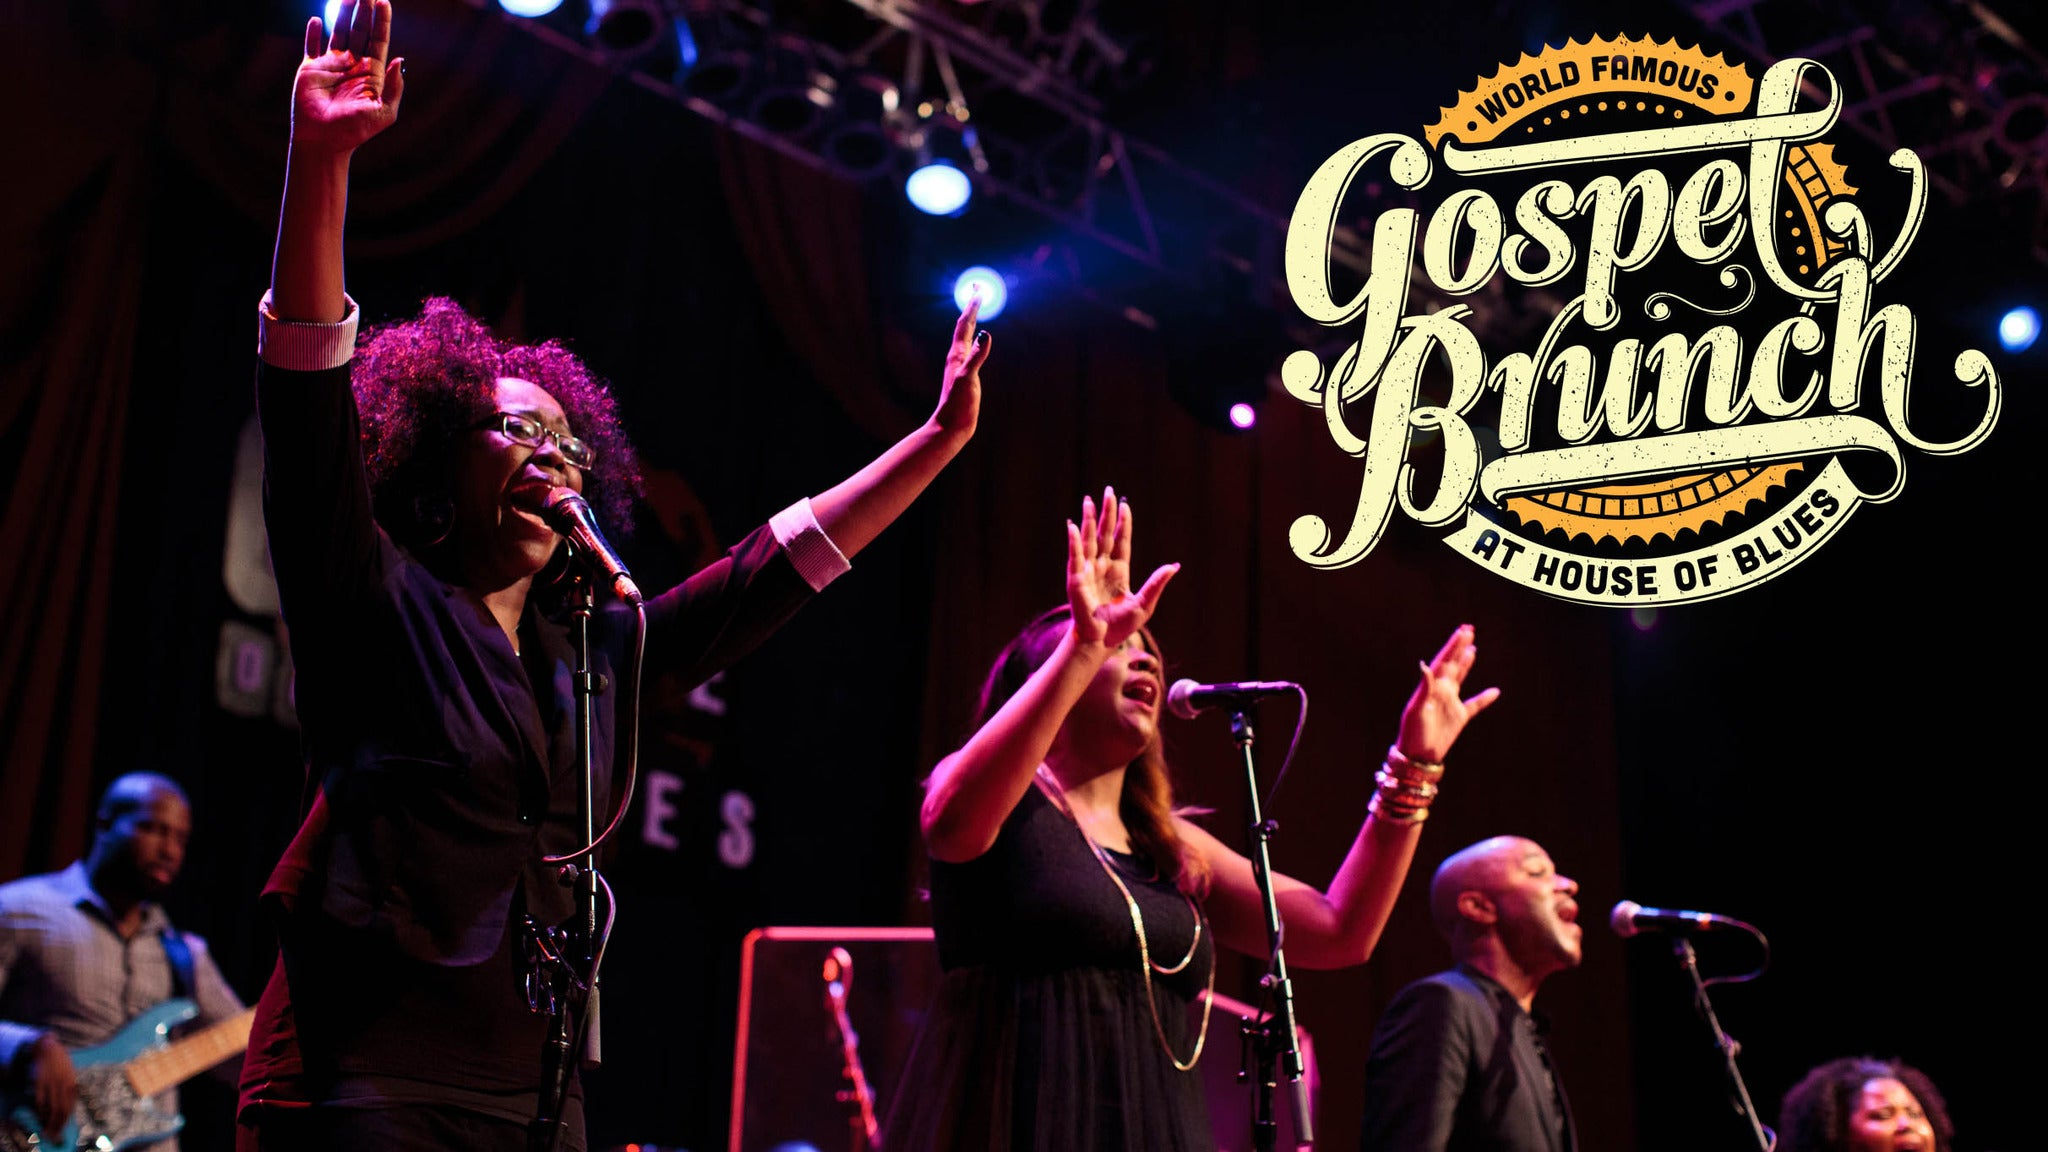 World Famous Gospel Brunch at House of Blues - Orlando, FL 32830